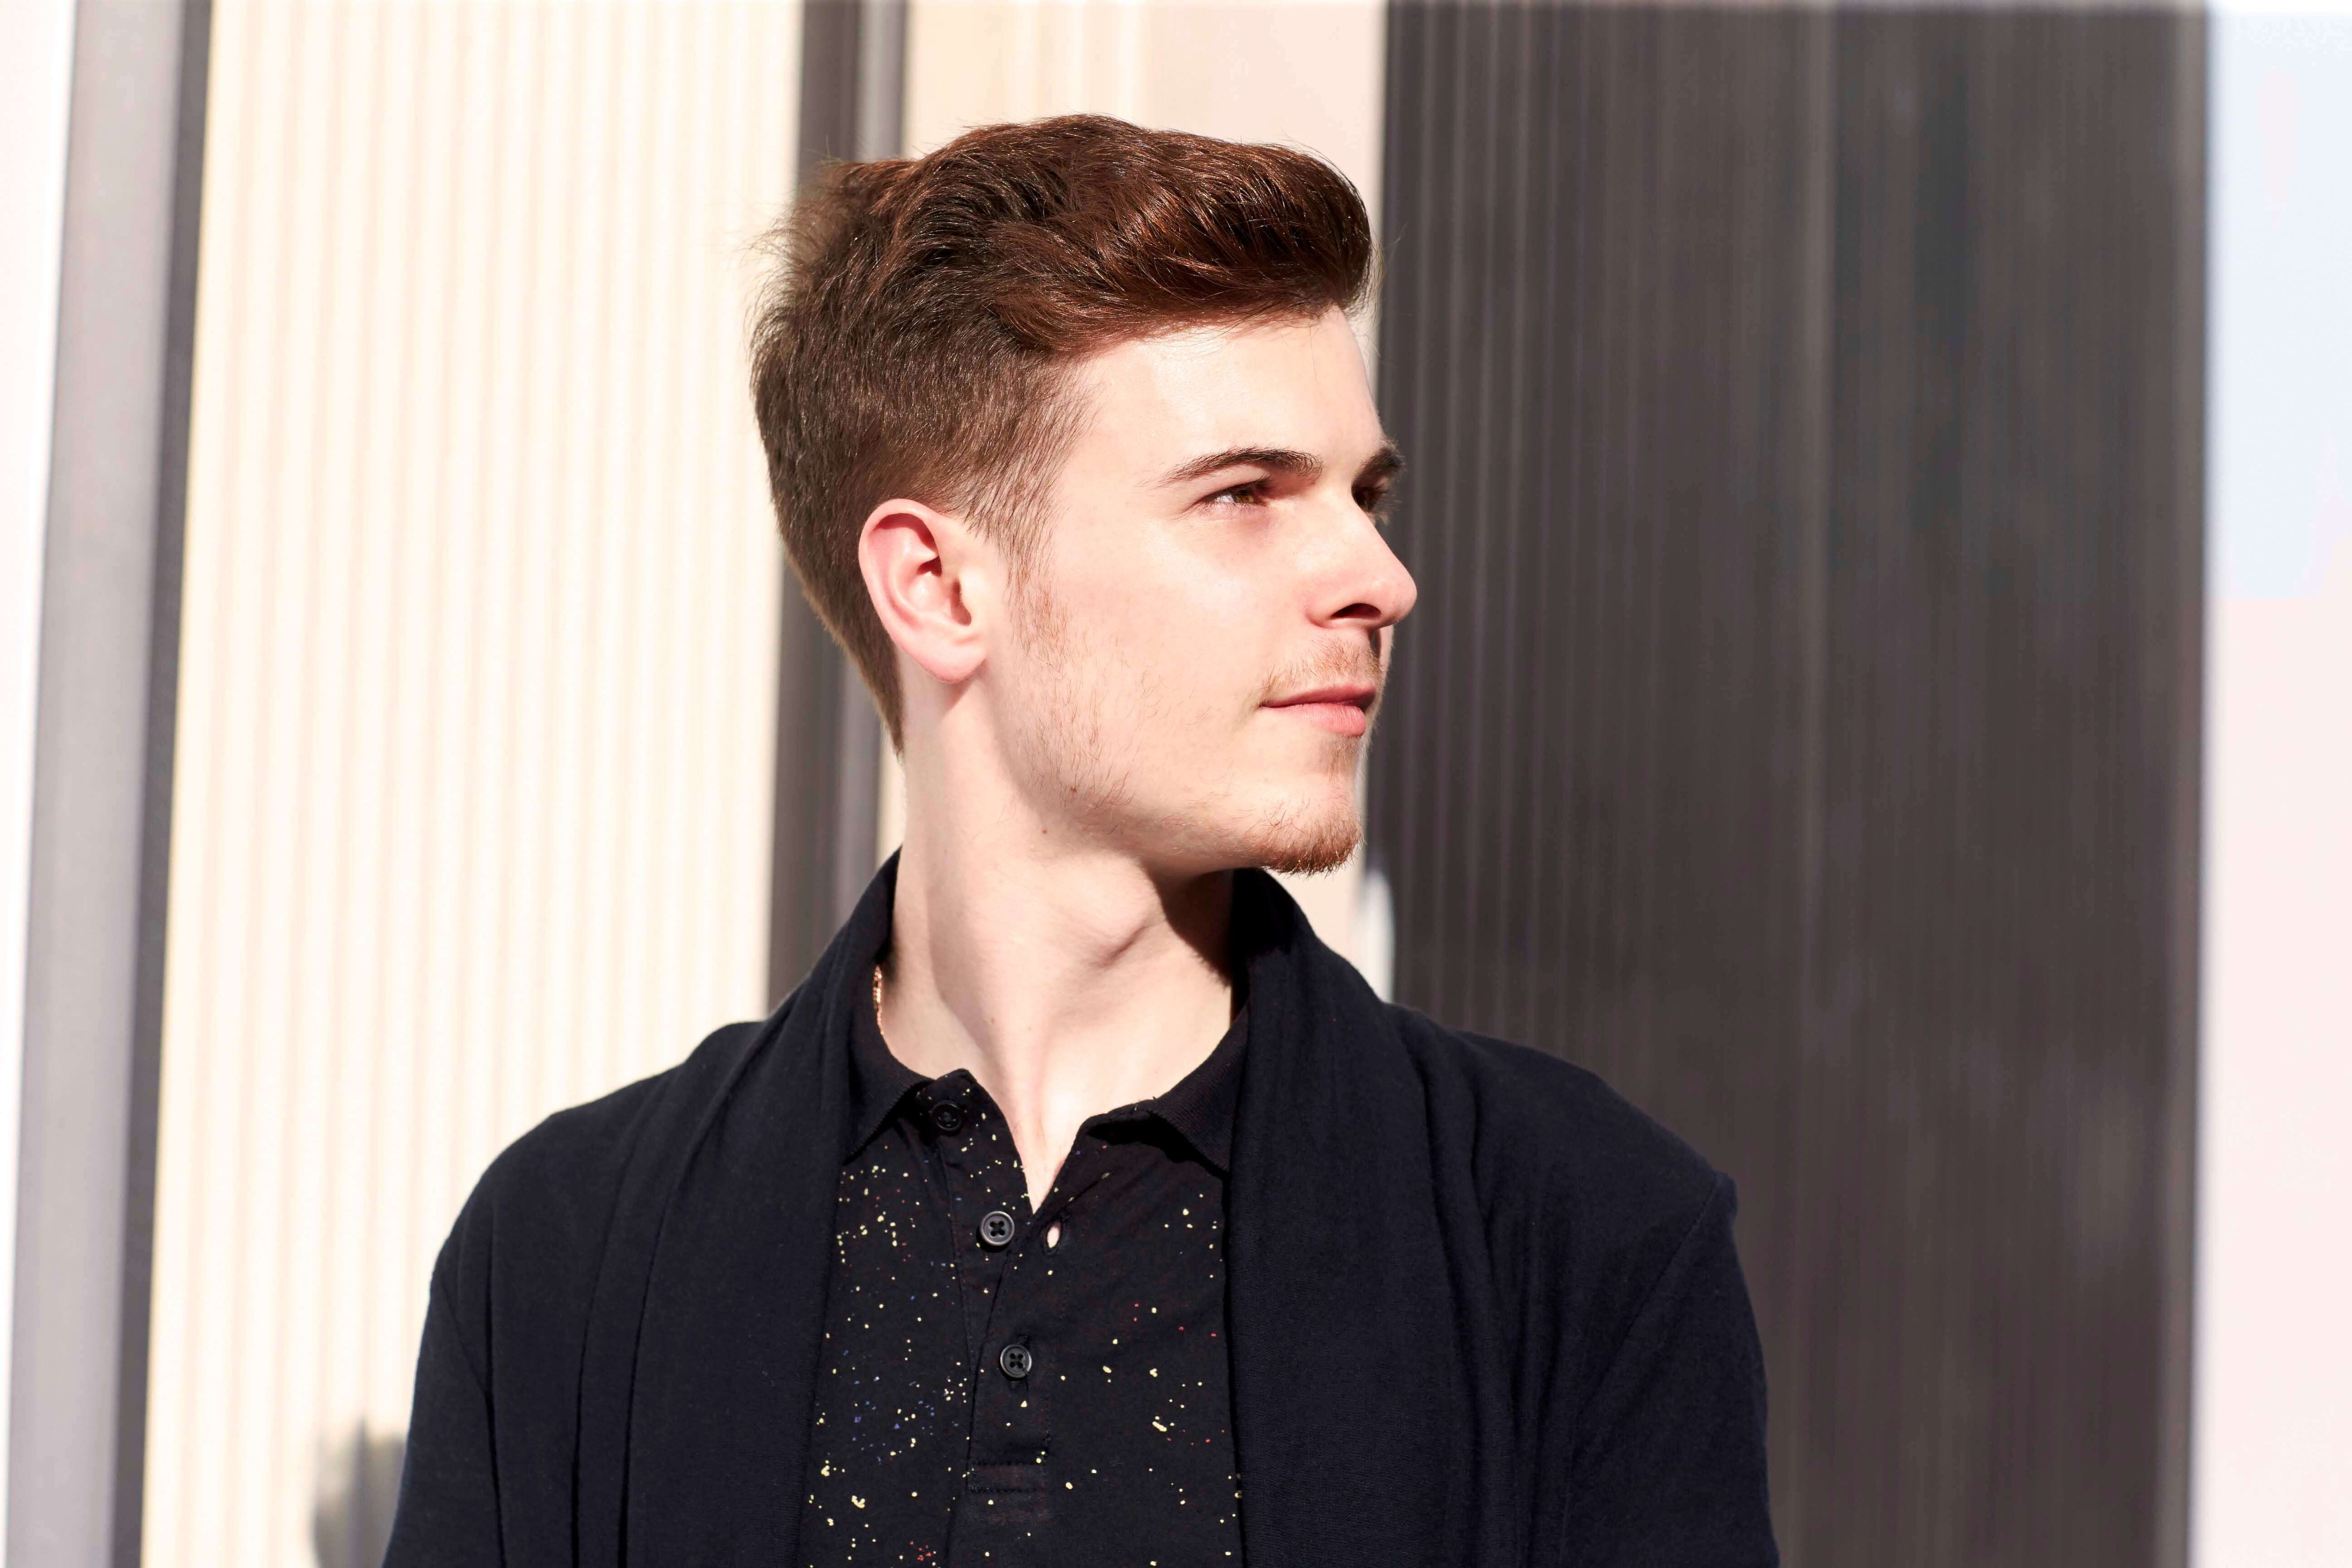 Cool Camouflage Y Hairstyles For Men With Thin Hair